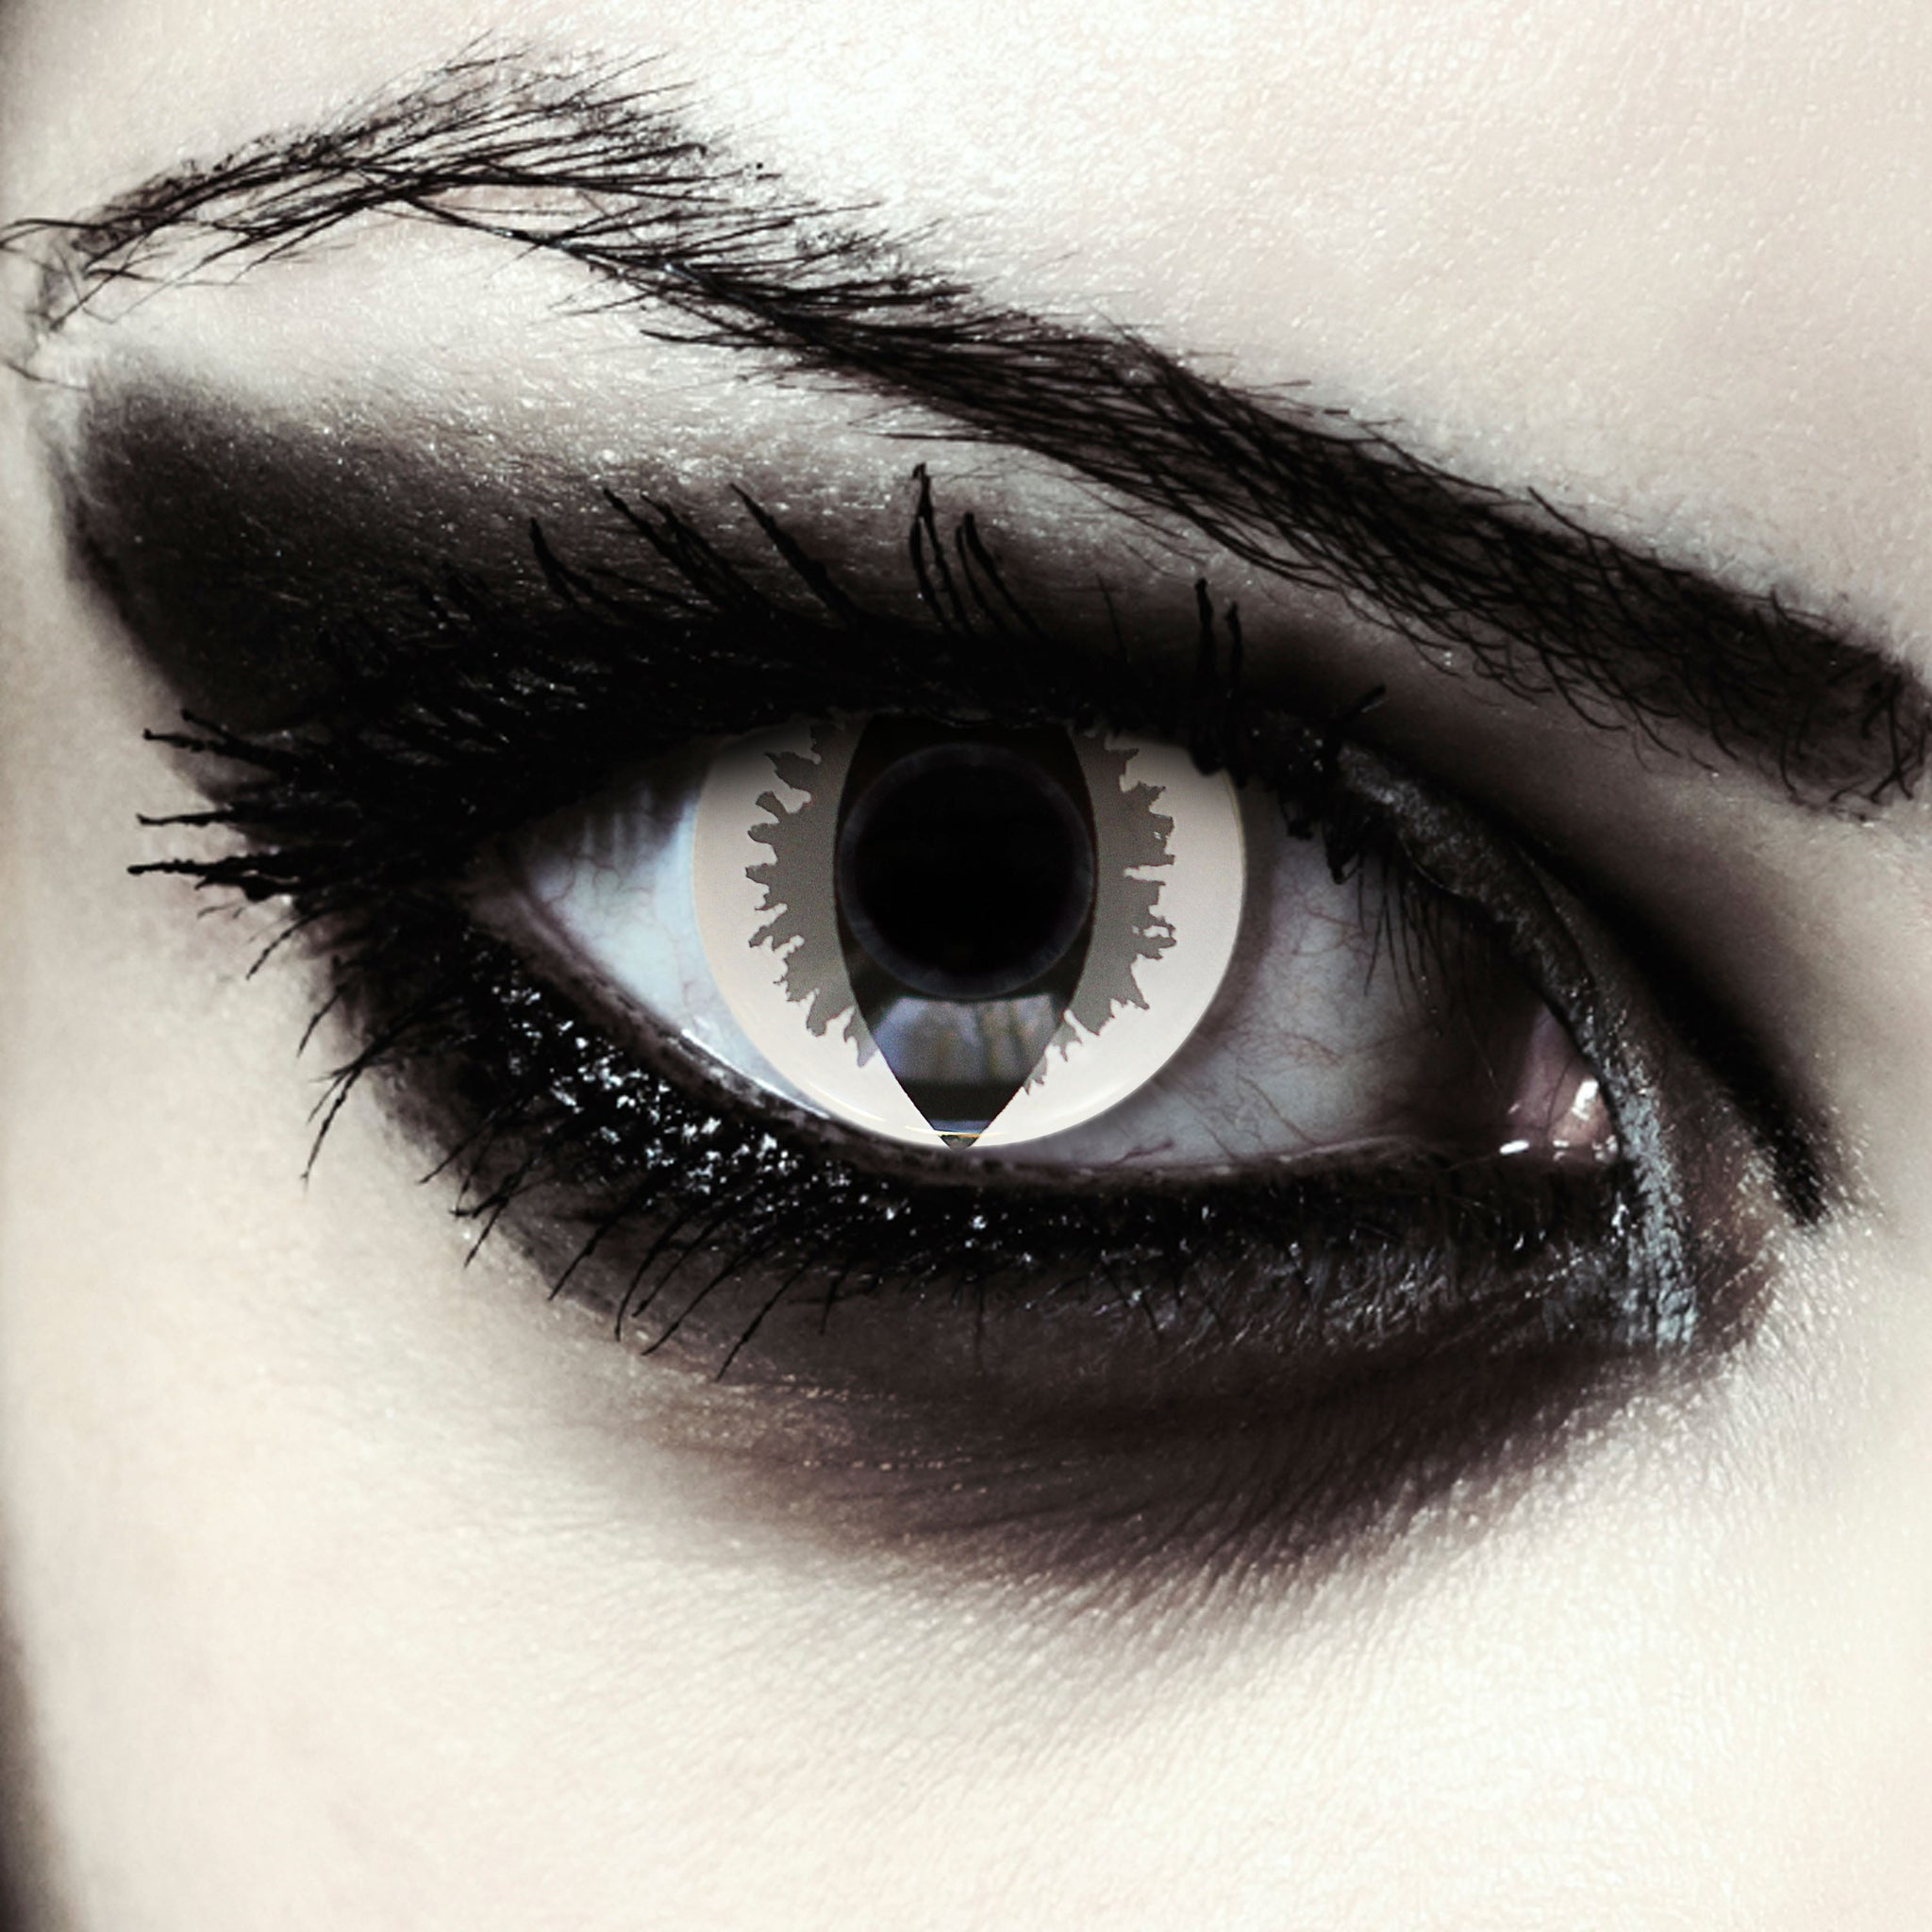 Grey And White Colored Cat Eye Contacts For Halloween Carnival